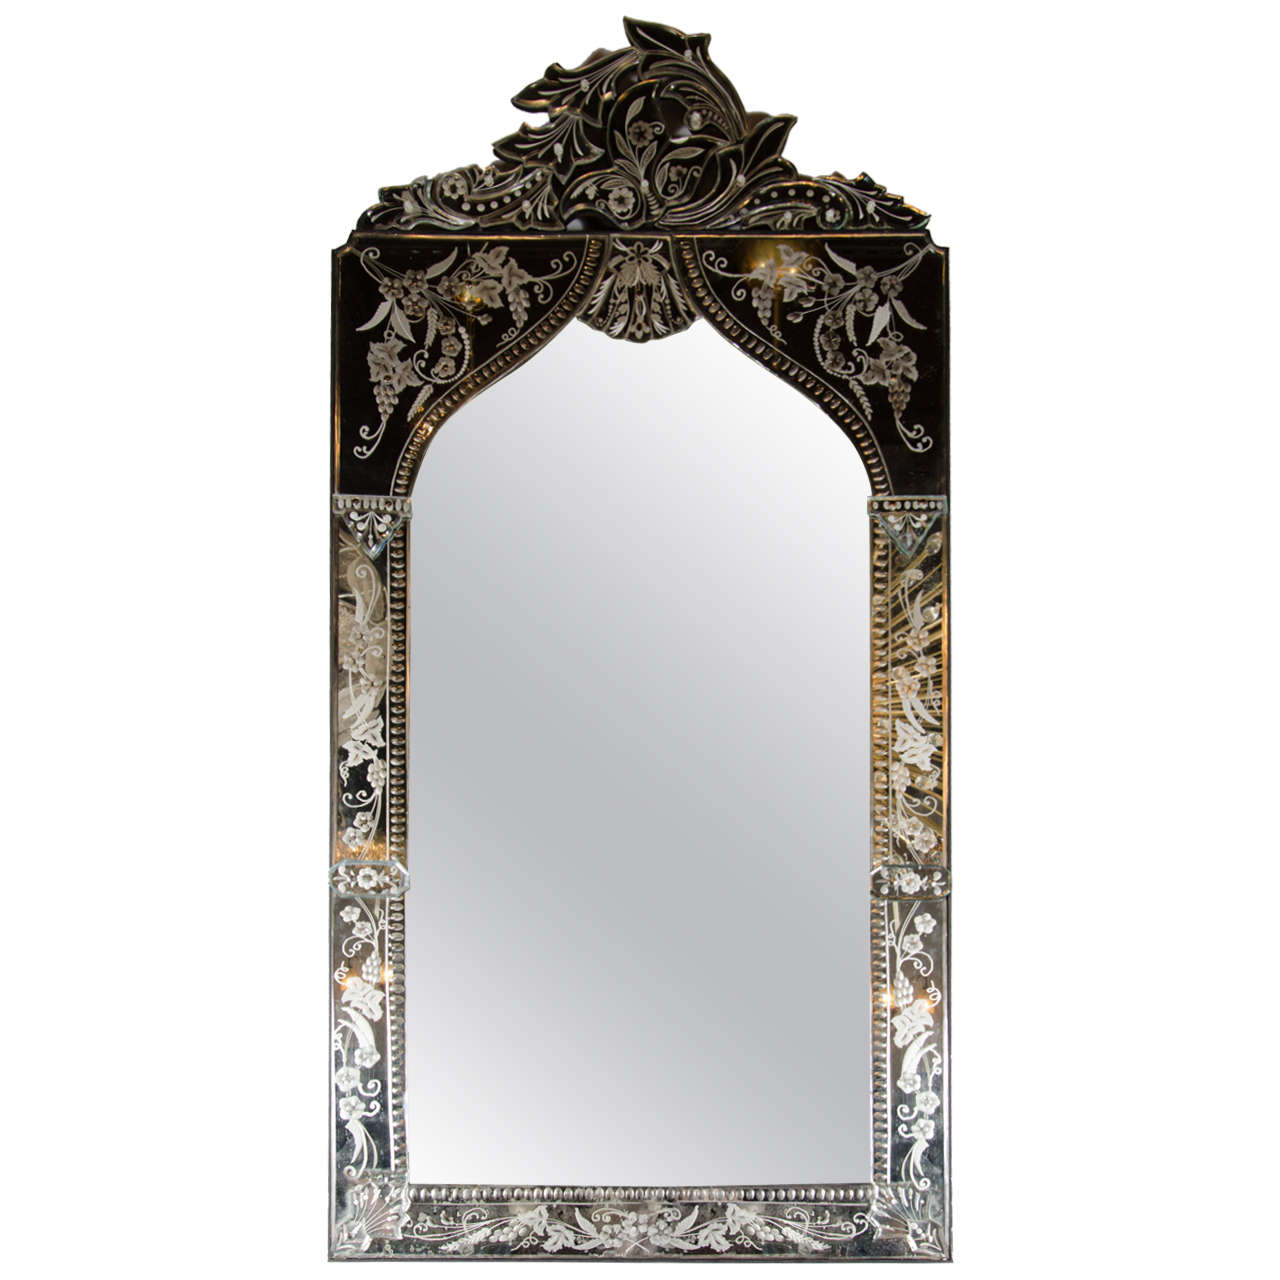 1stdibs Wall Mirror – Venetian Arabesque Style Reverse Regarding Fashionable Venetian Style Wall Mirrors (View 20 of 20)